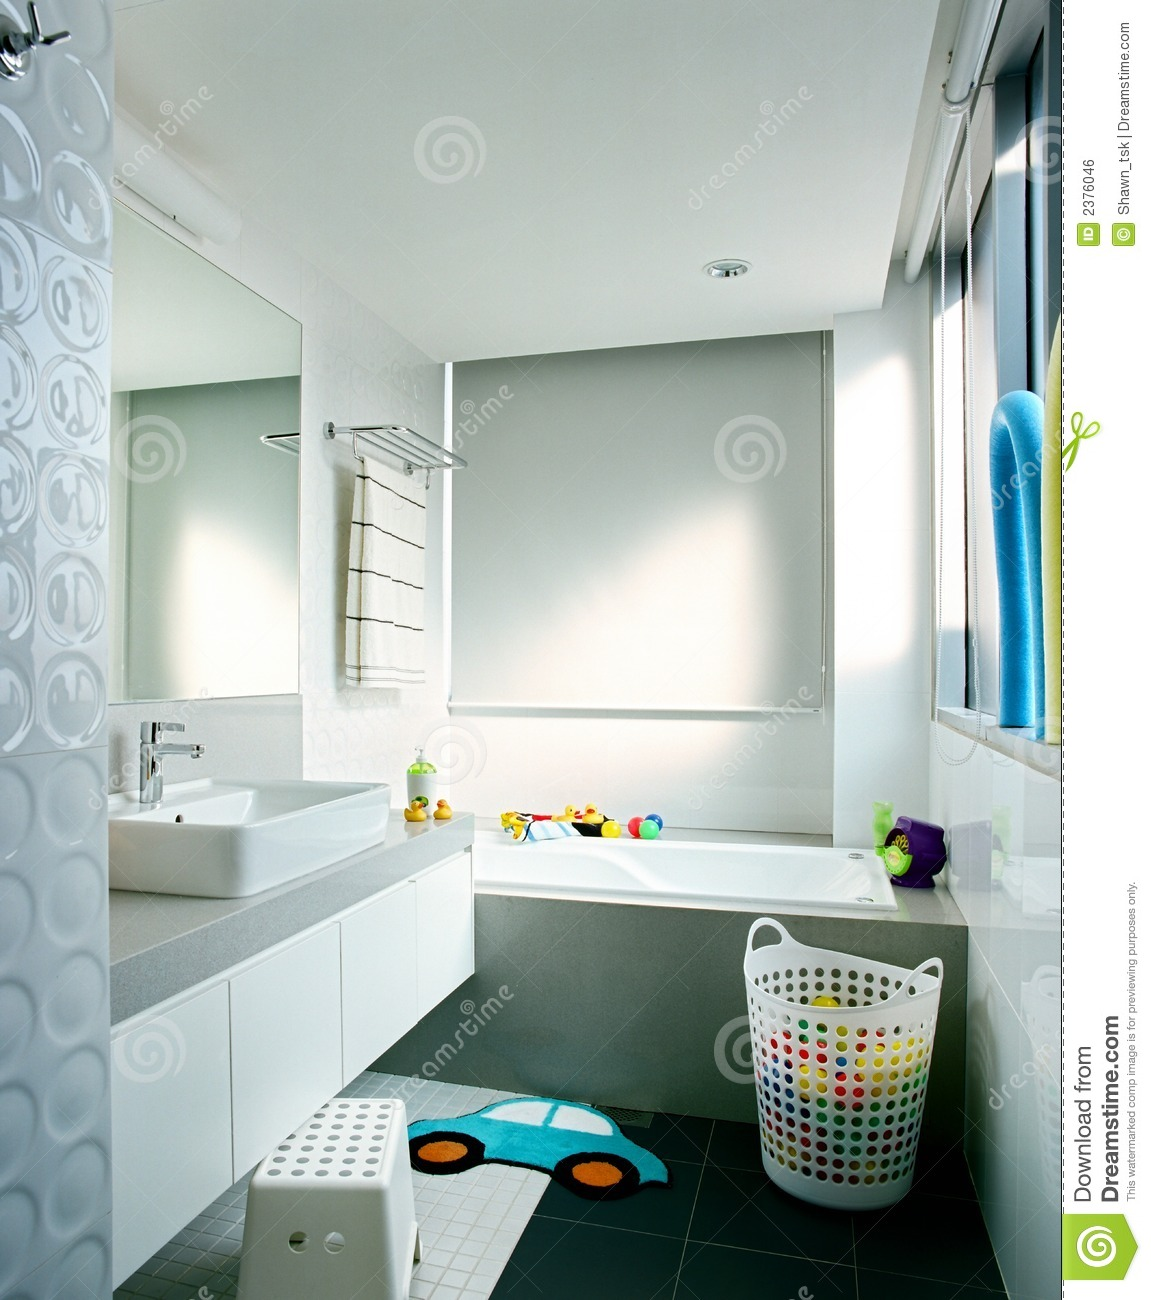 Interior design - bathroom stock photo. Image of bathroom - 2376046